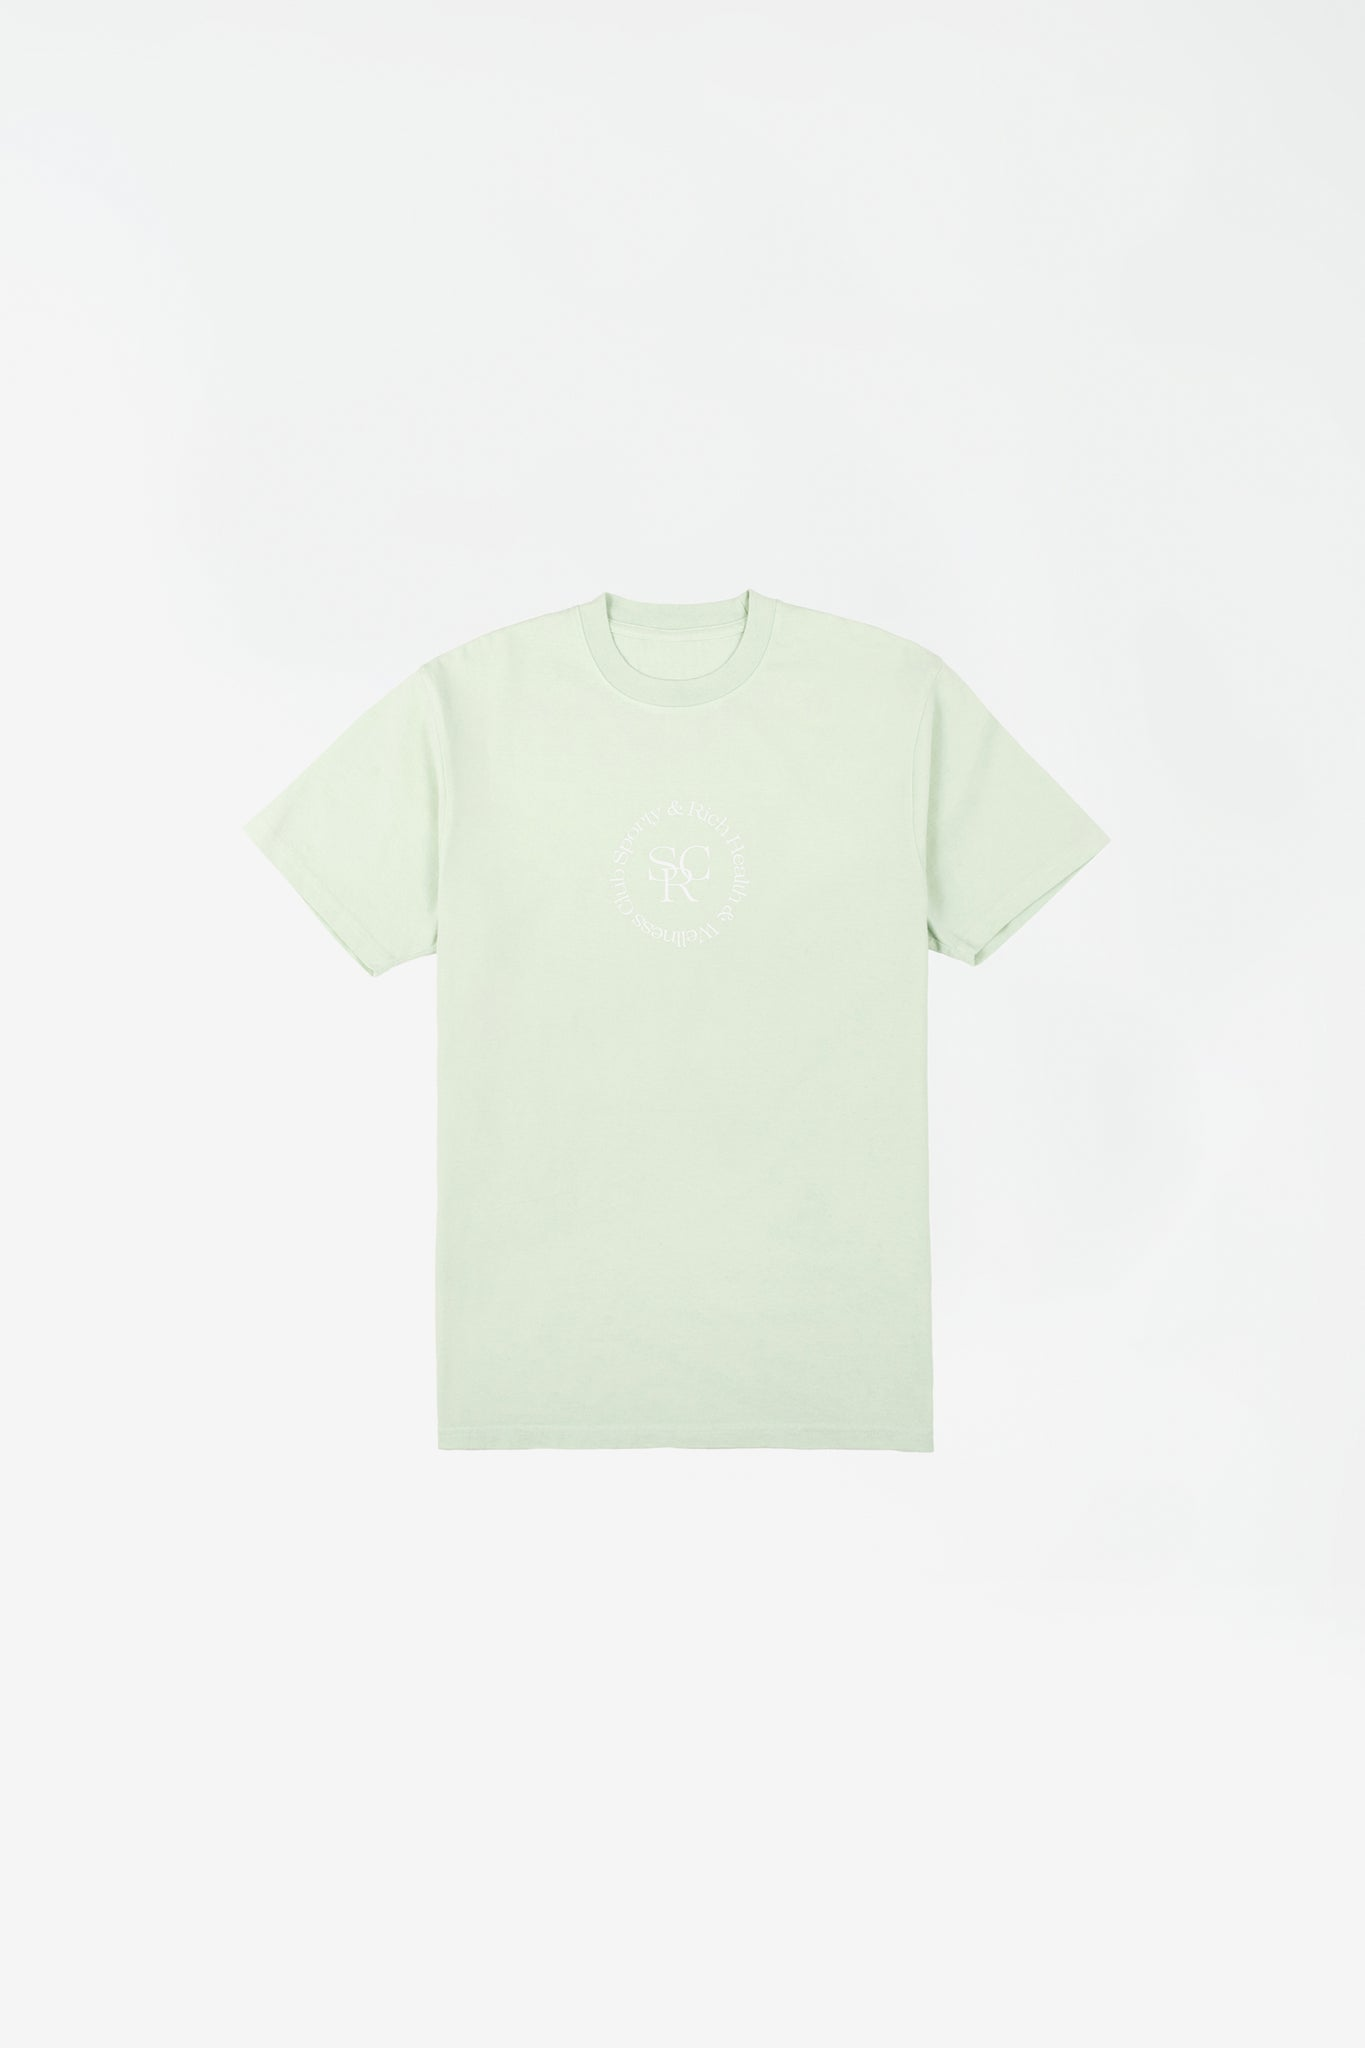 SRHWC t-shirt mint cream